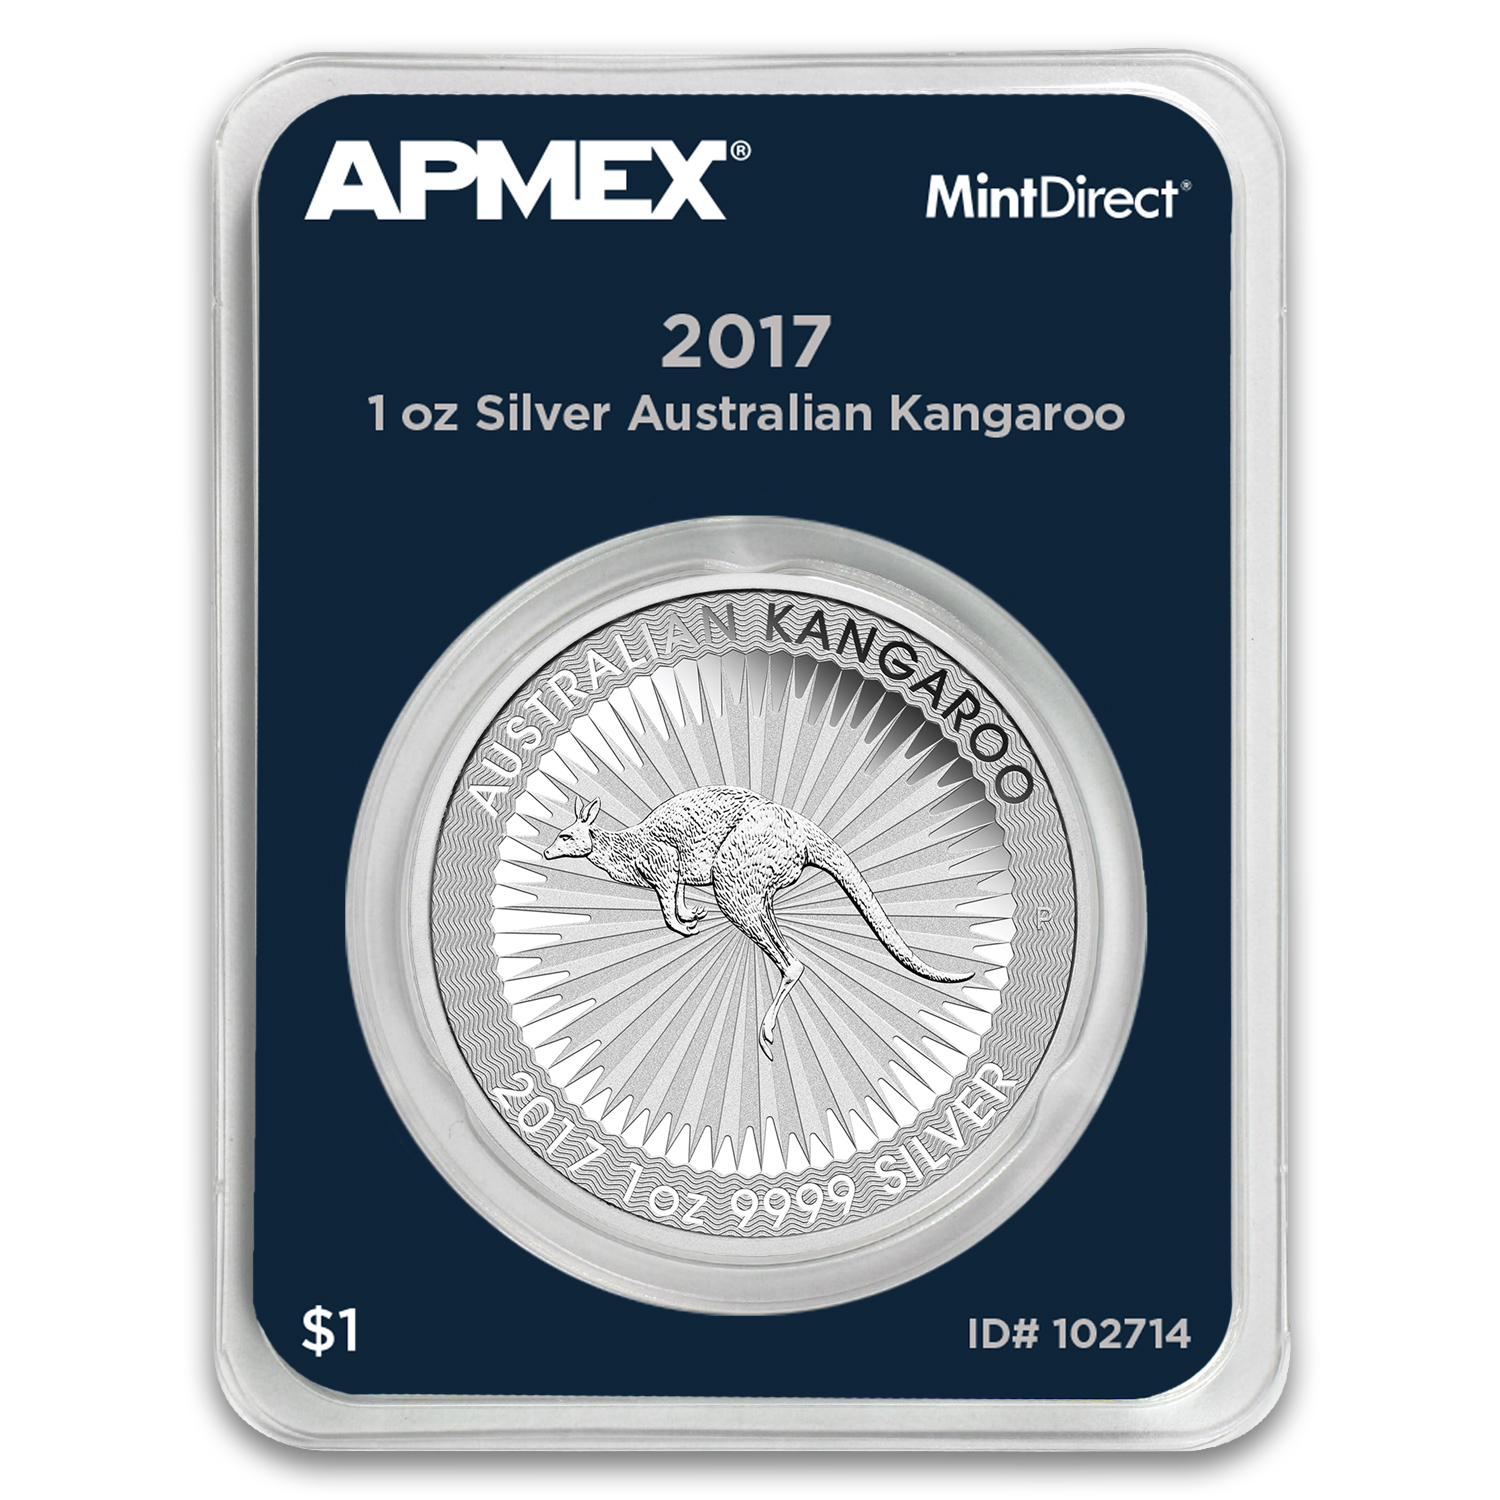 2017 Australia 1 oz Silver Kangaroo (MintDirect® Single)